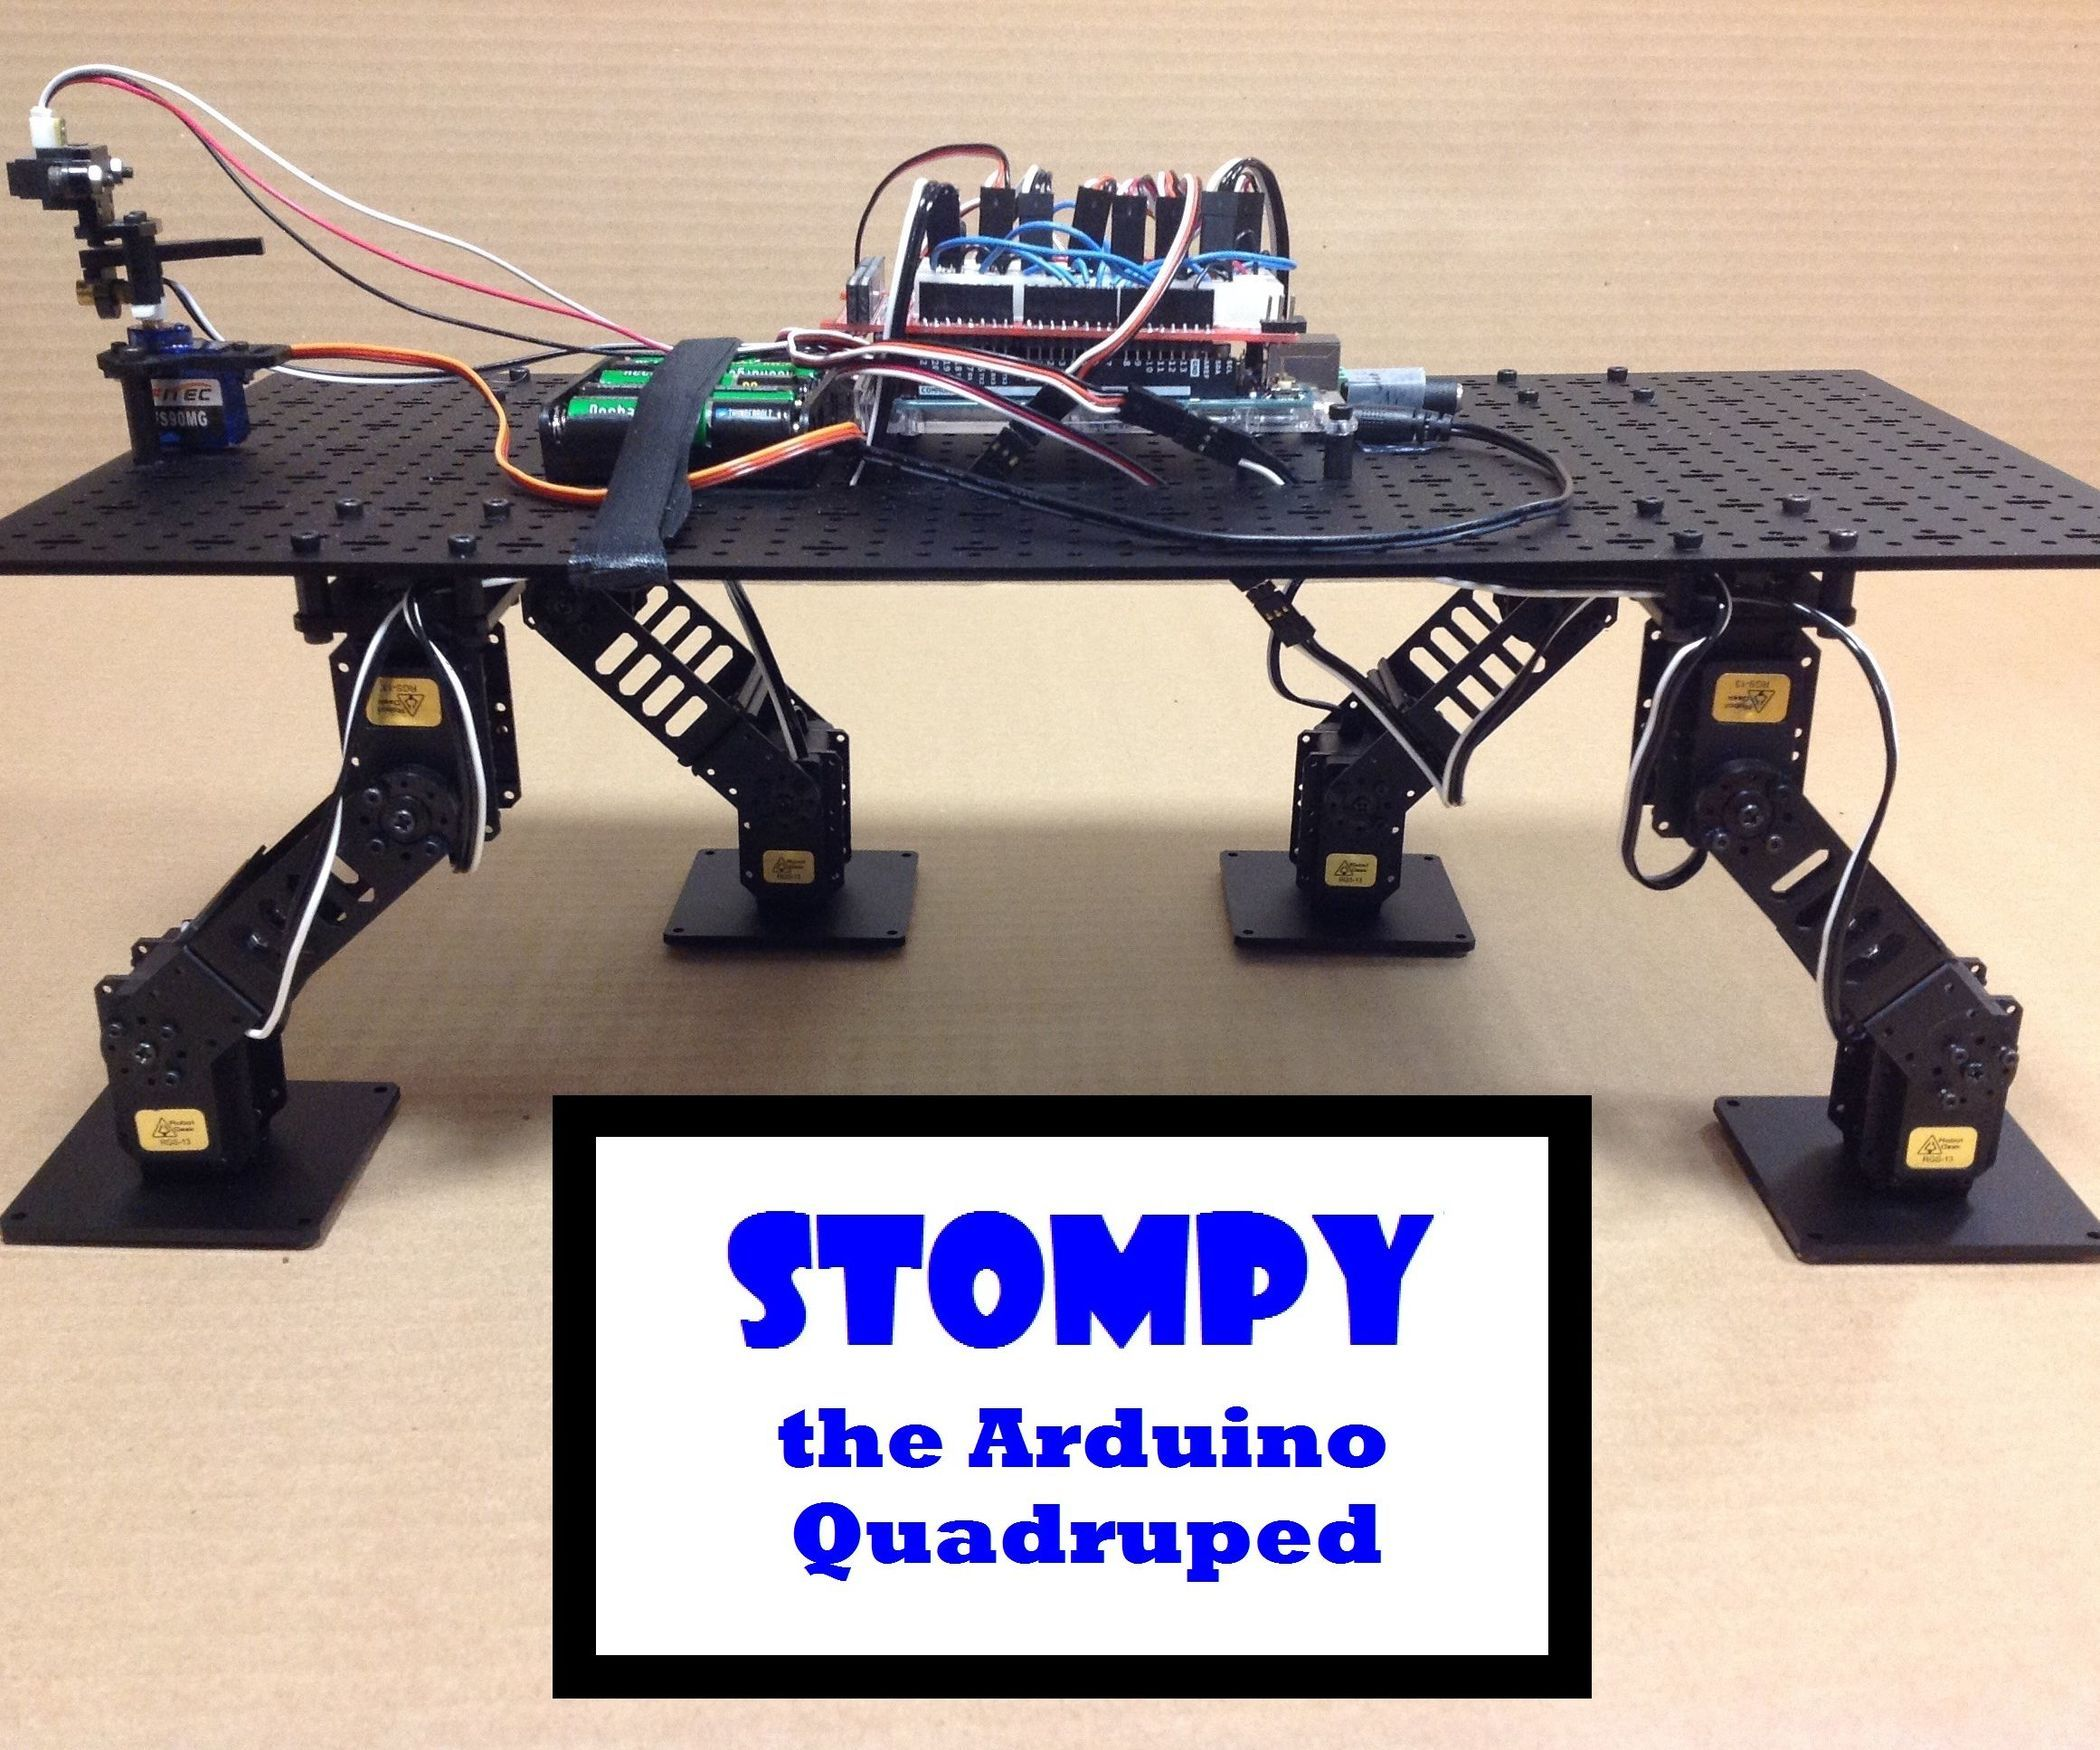 Arduino Quadruped Robot Make Pinterest And Makeblock Inventor Kit Add On Six Legged Meet Stompy The Most Of Quadrupeds Ive Seen Use Insect Type Legs But I Wanted To Try One With